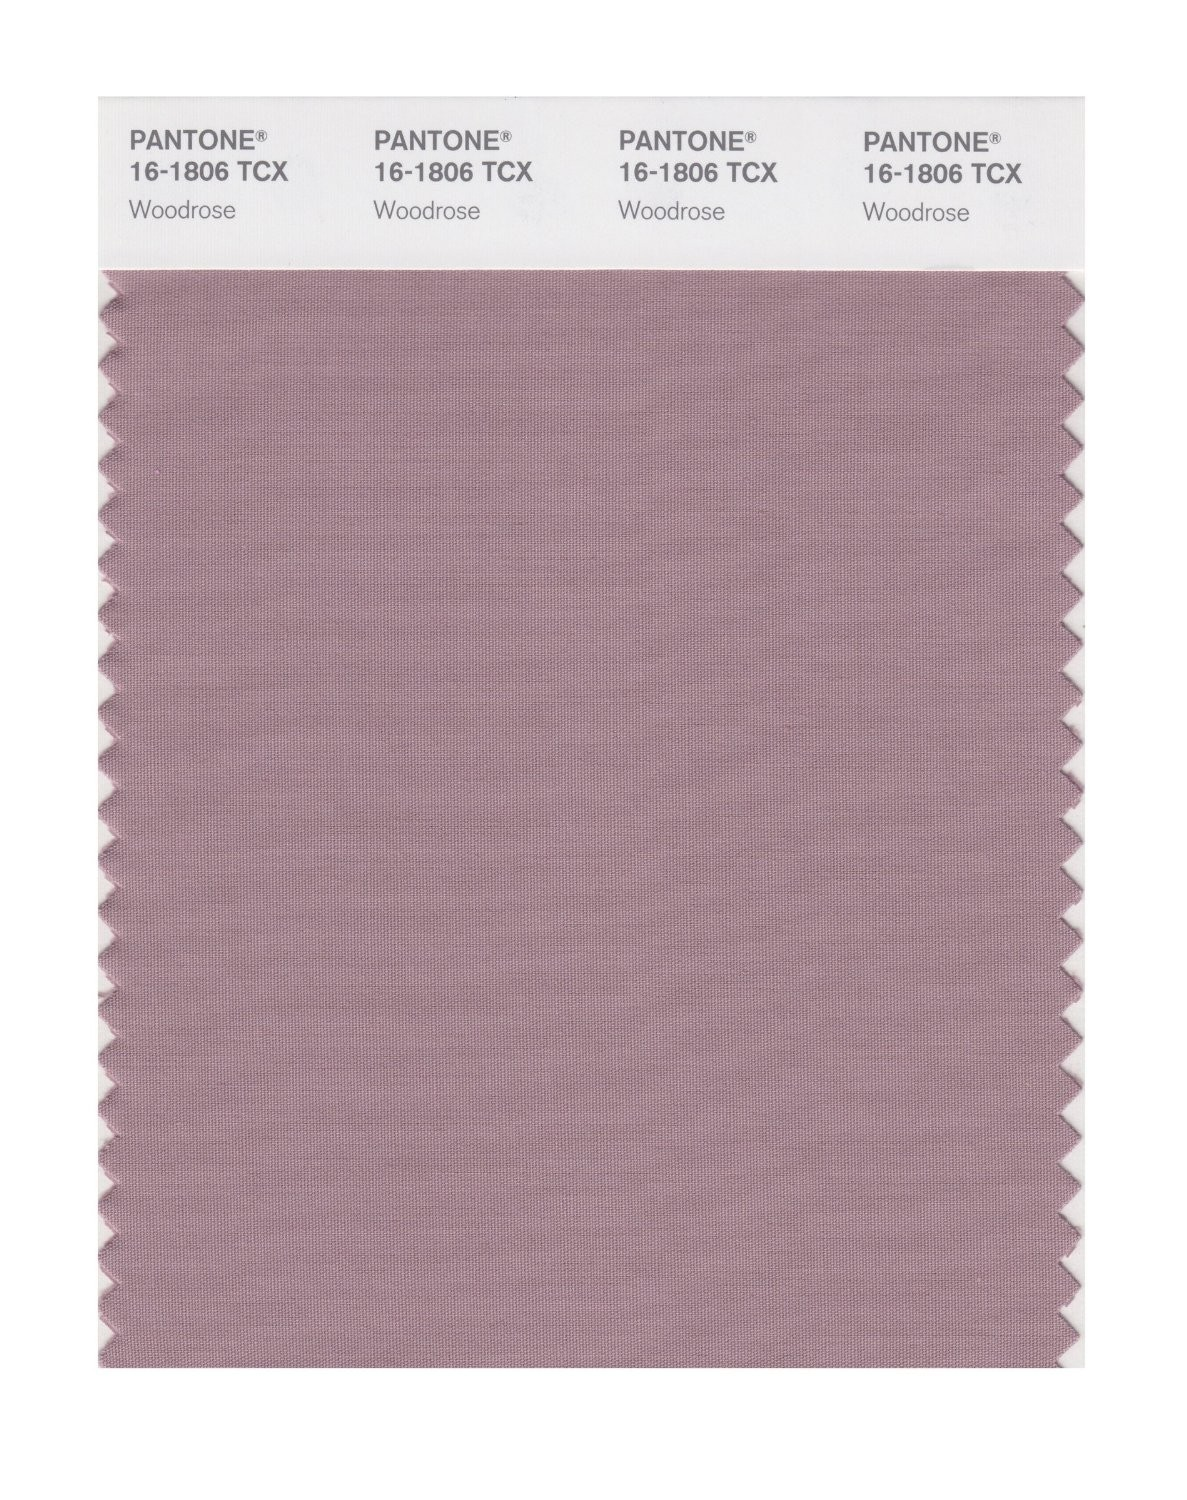 Pantone 16-1806 TCX Swatch Card Woodrose